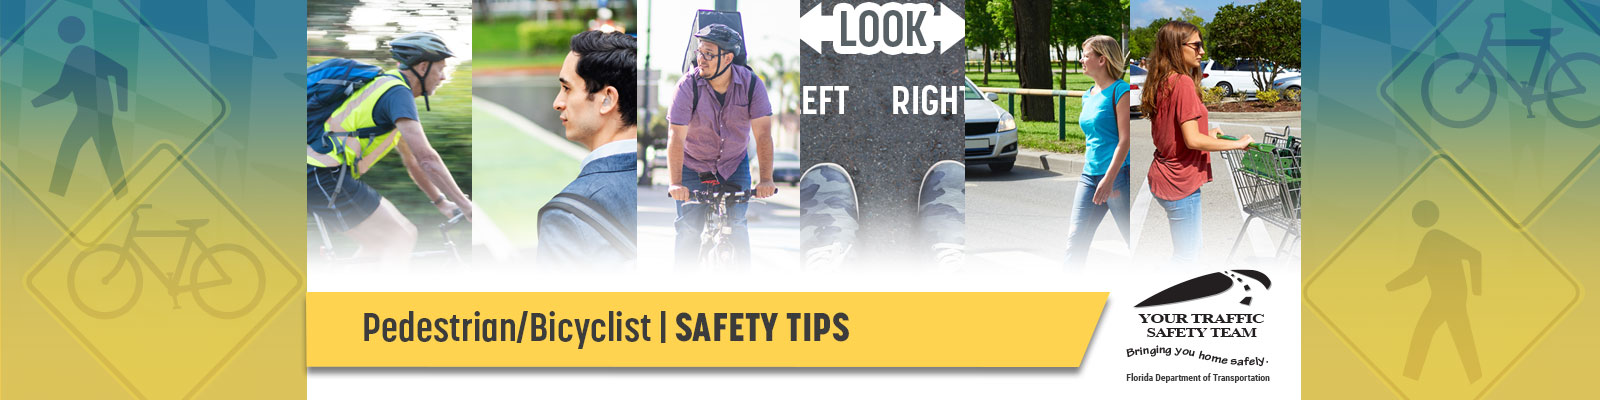 Pedestrian and Bicyclist Safety Tips